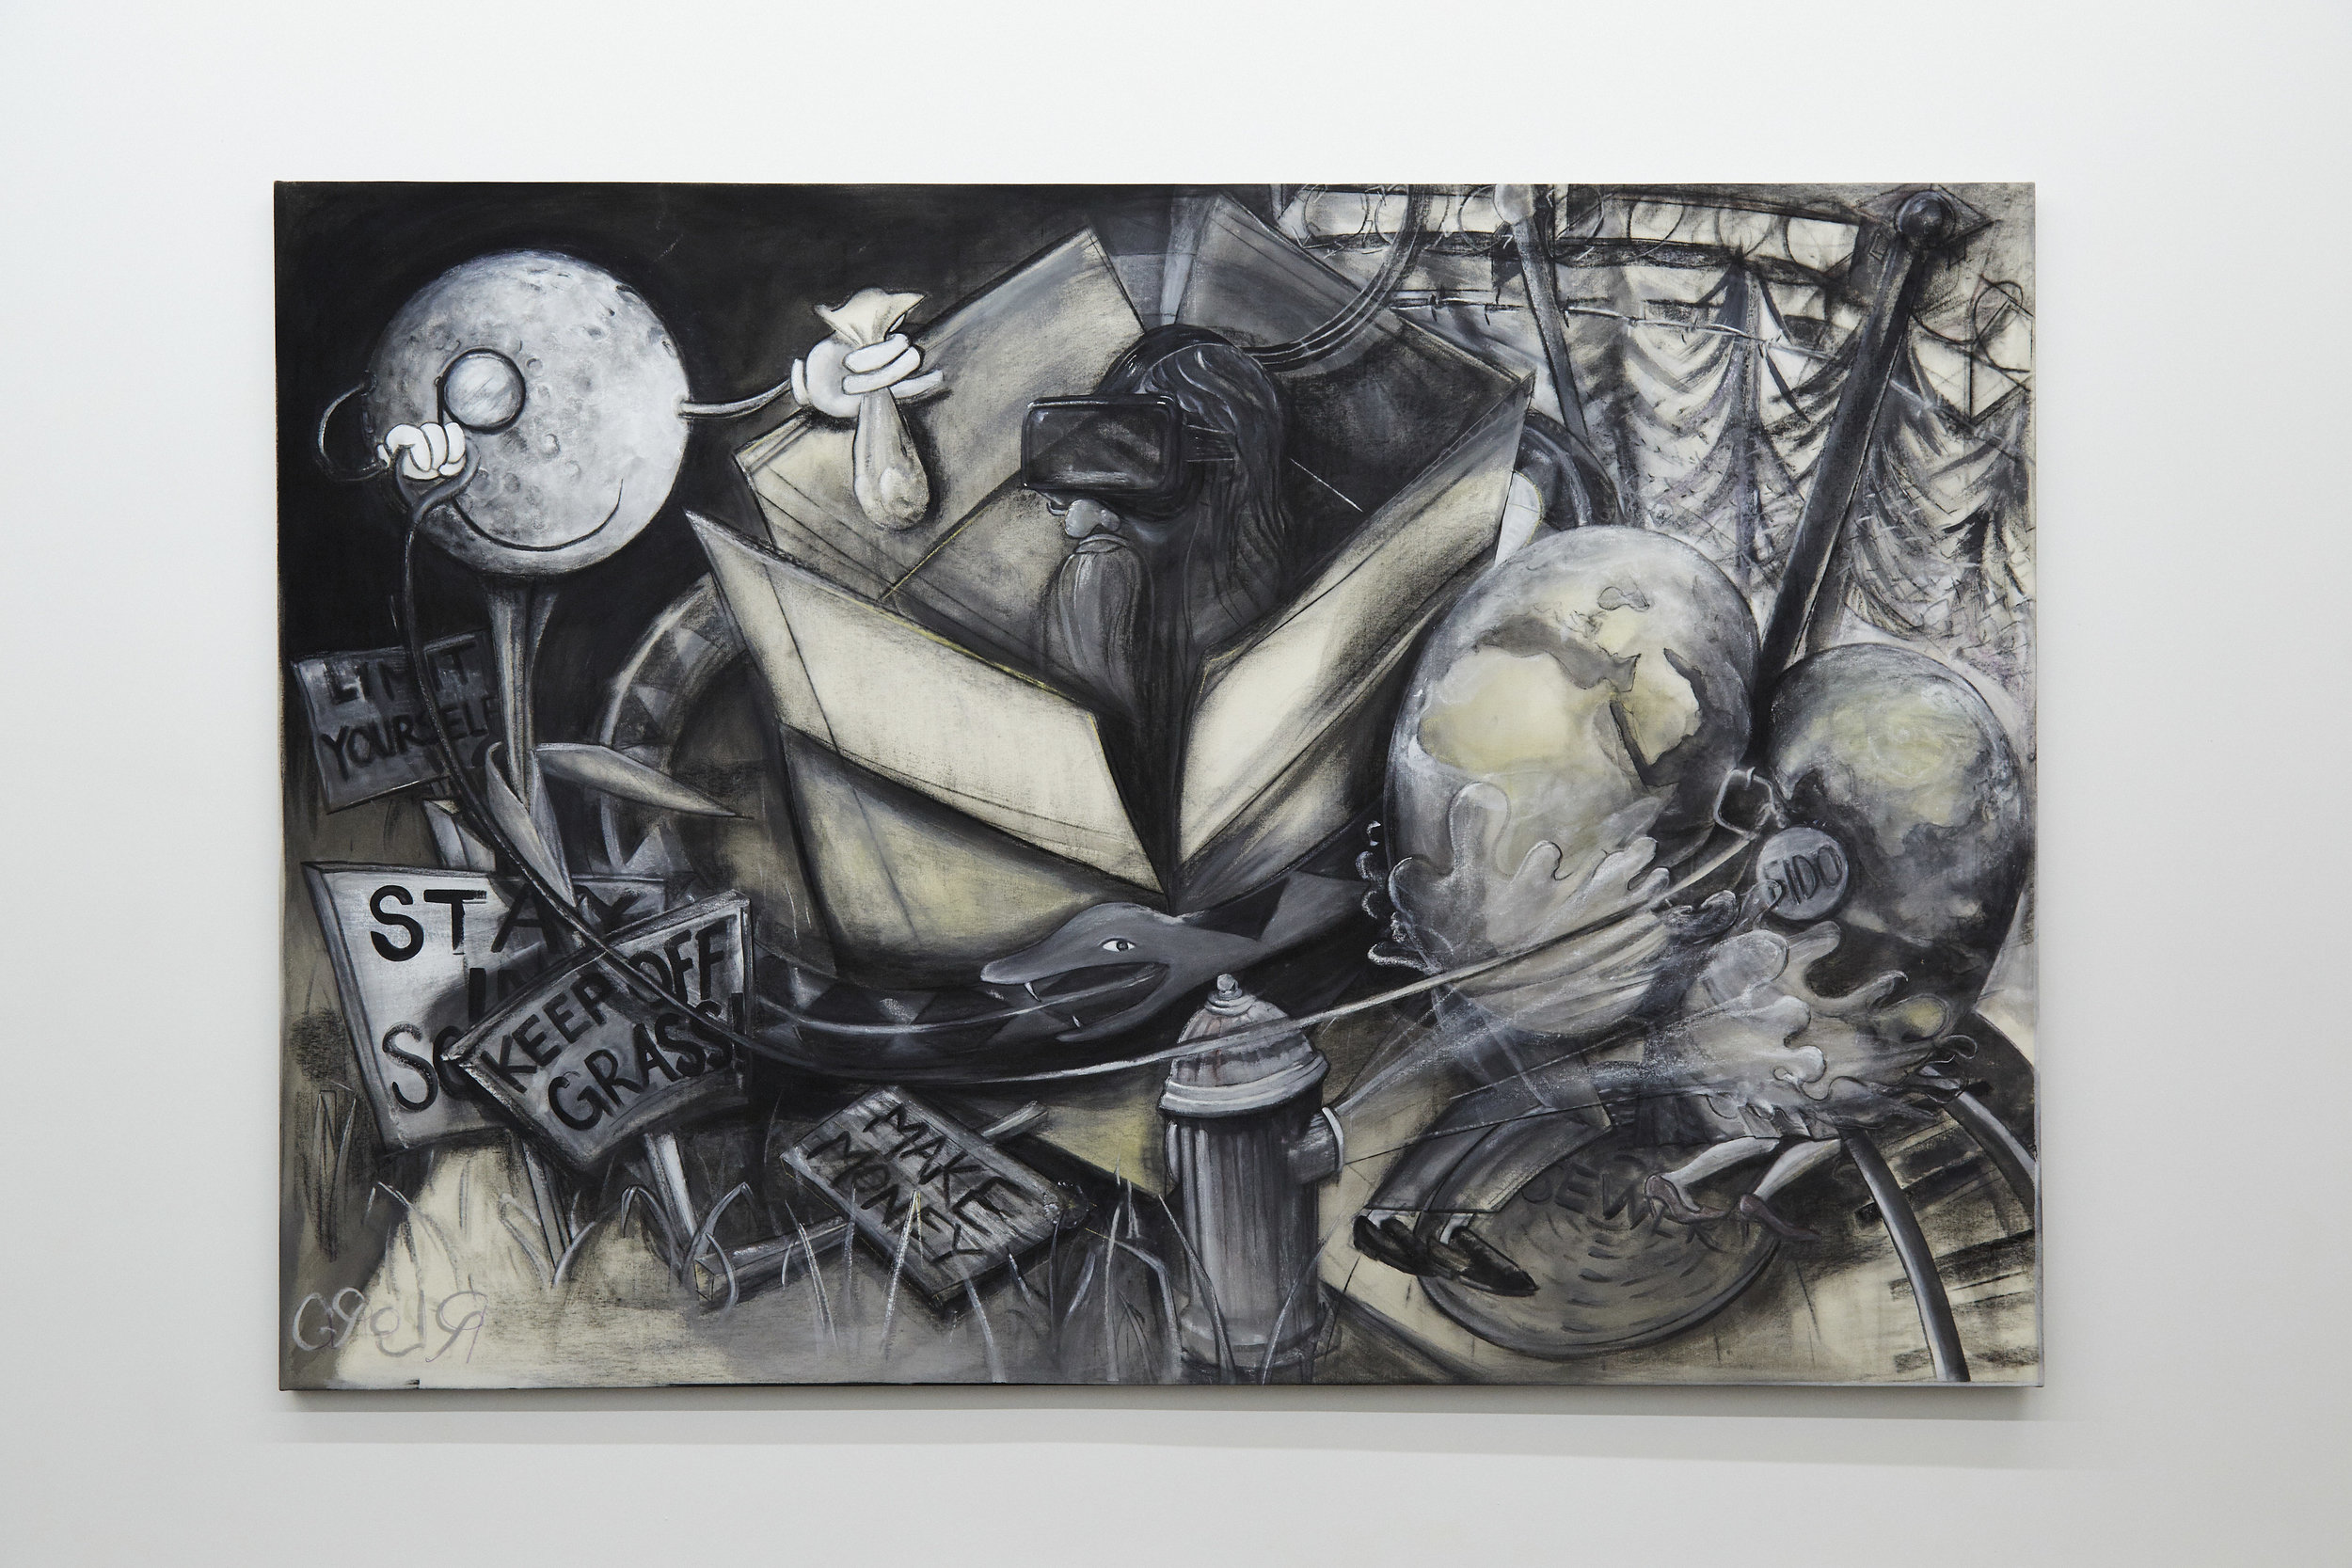 R.Lord,  The Central Scrutinizer , gesso and charcoal on canvas, 2016-2017